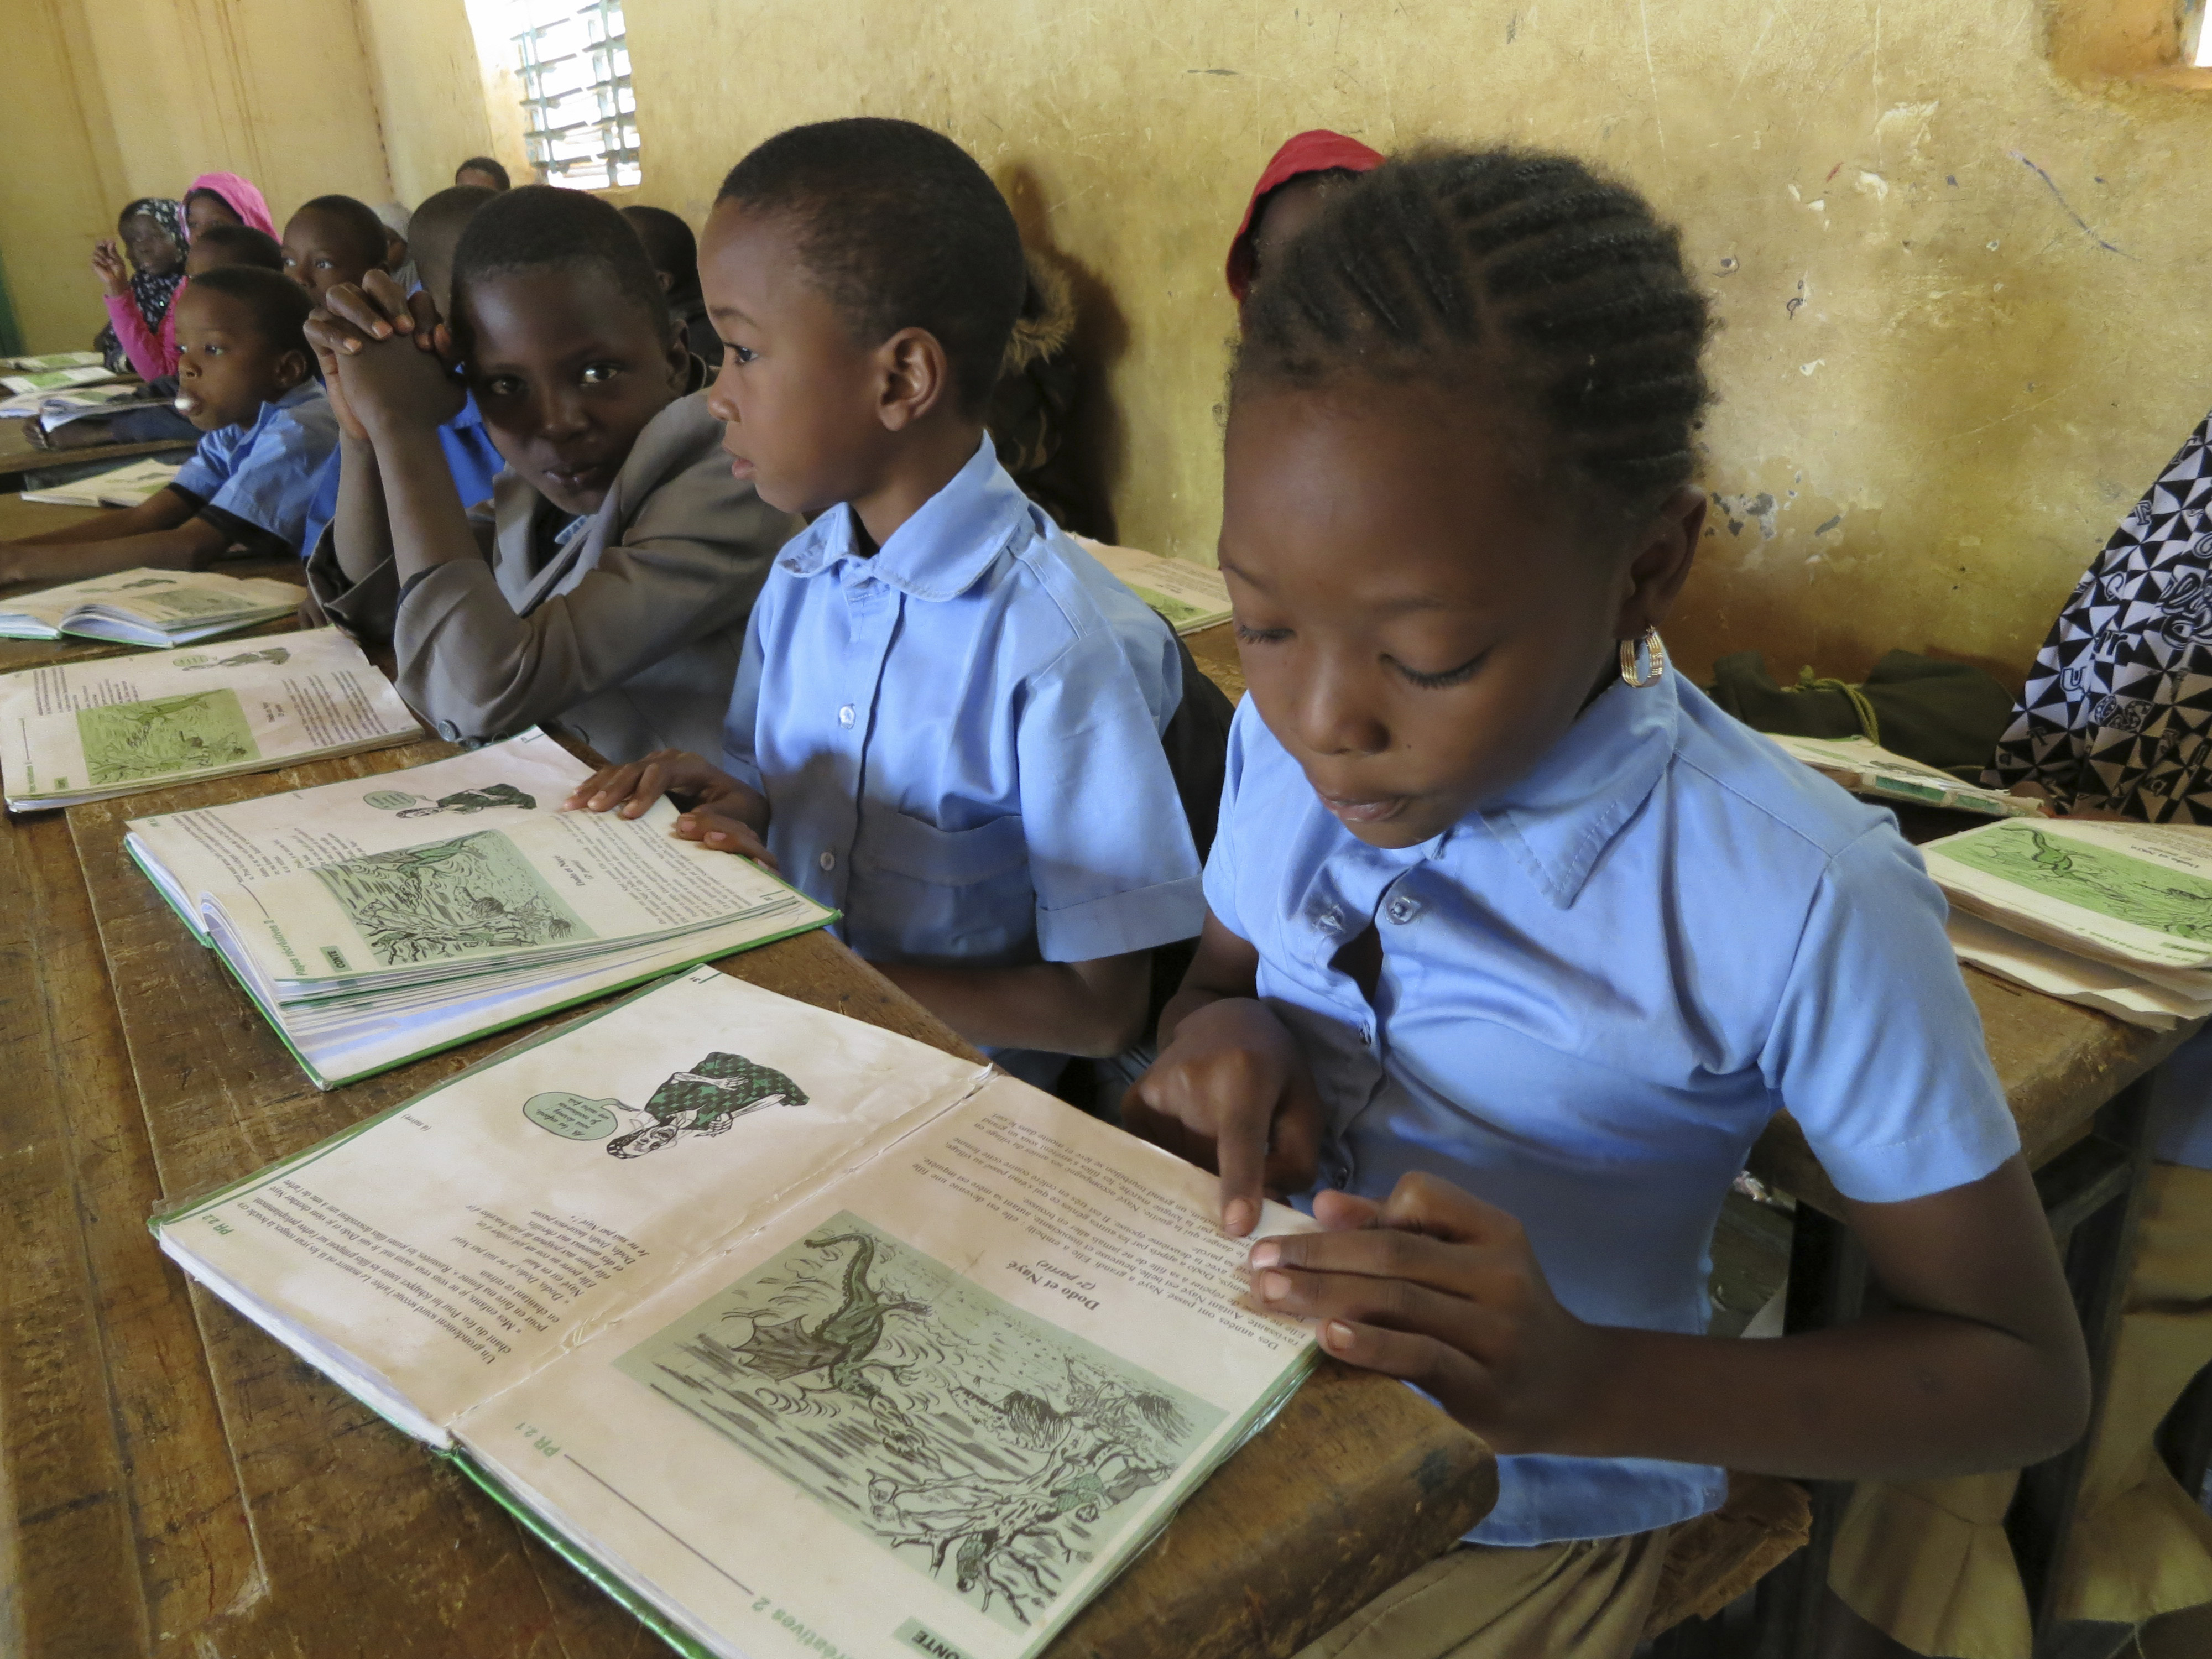 Students reading in school books at a Nigerian school on December 09, 2013, in Niamey, Niger.